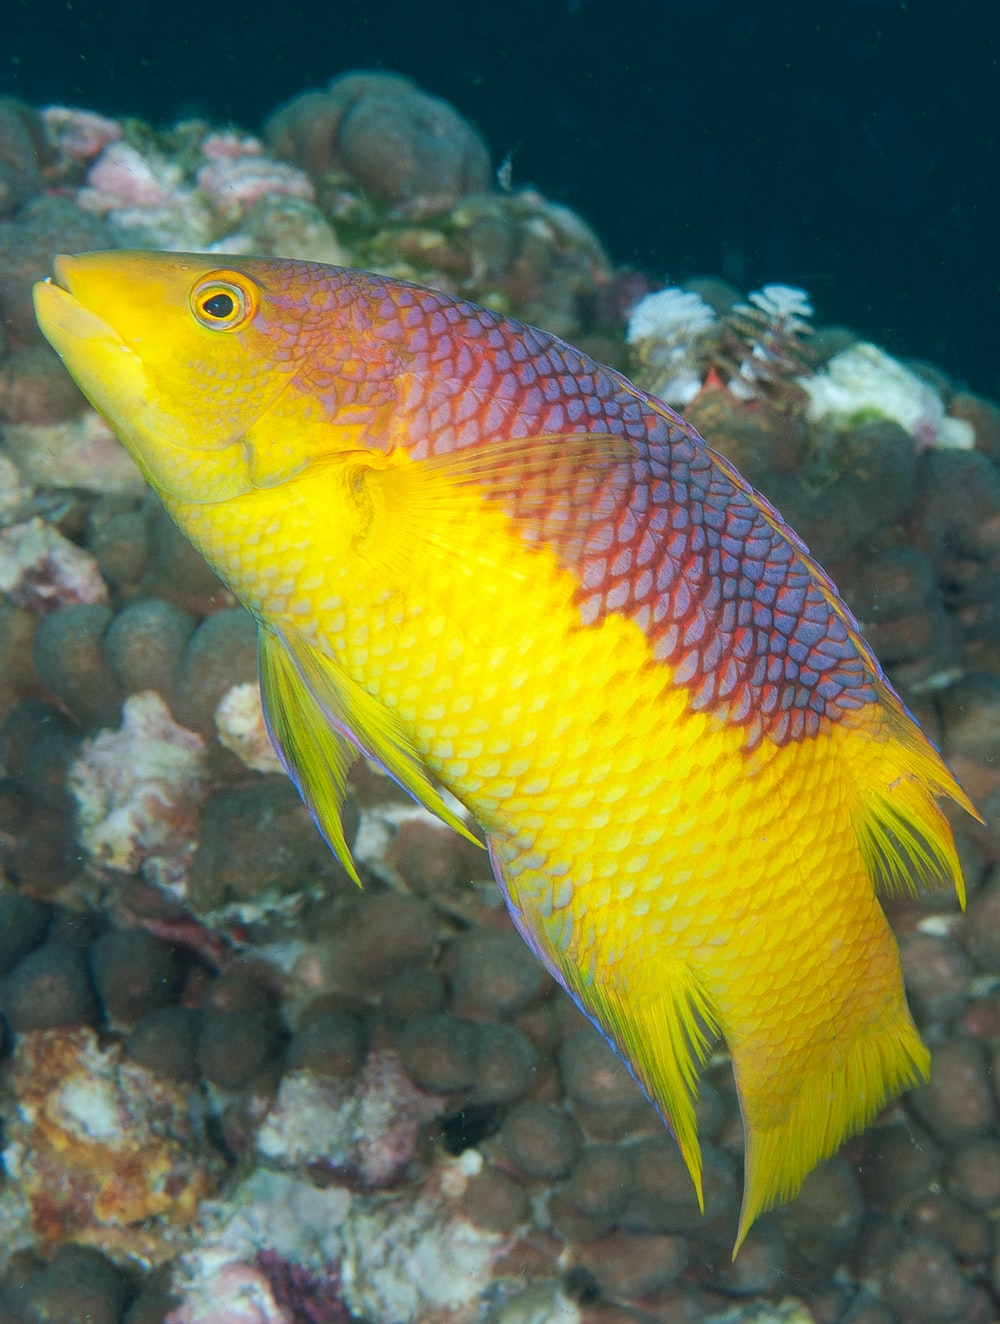 yellow and red fish in fish tank